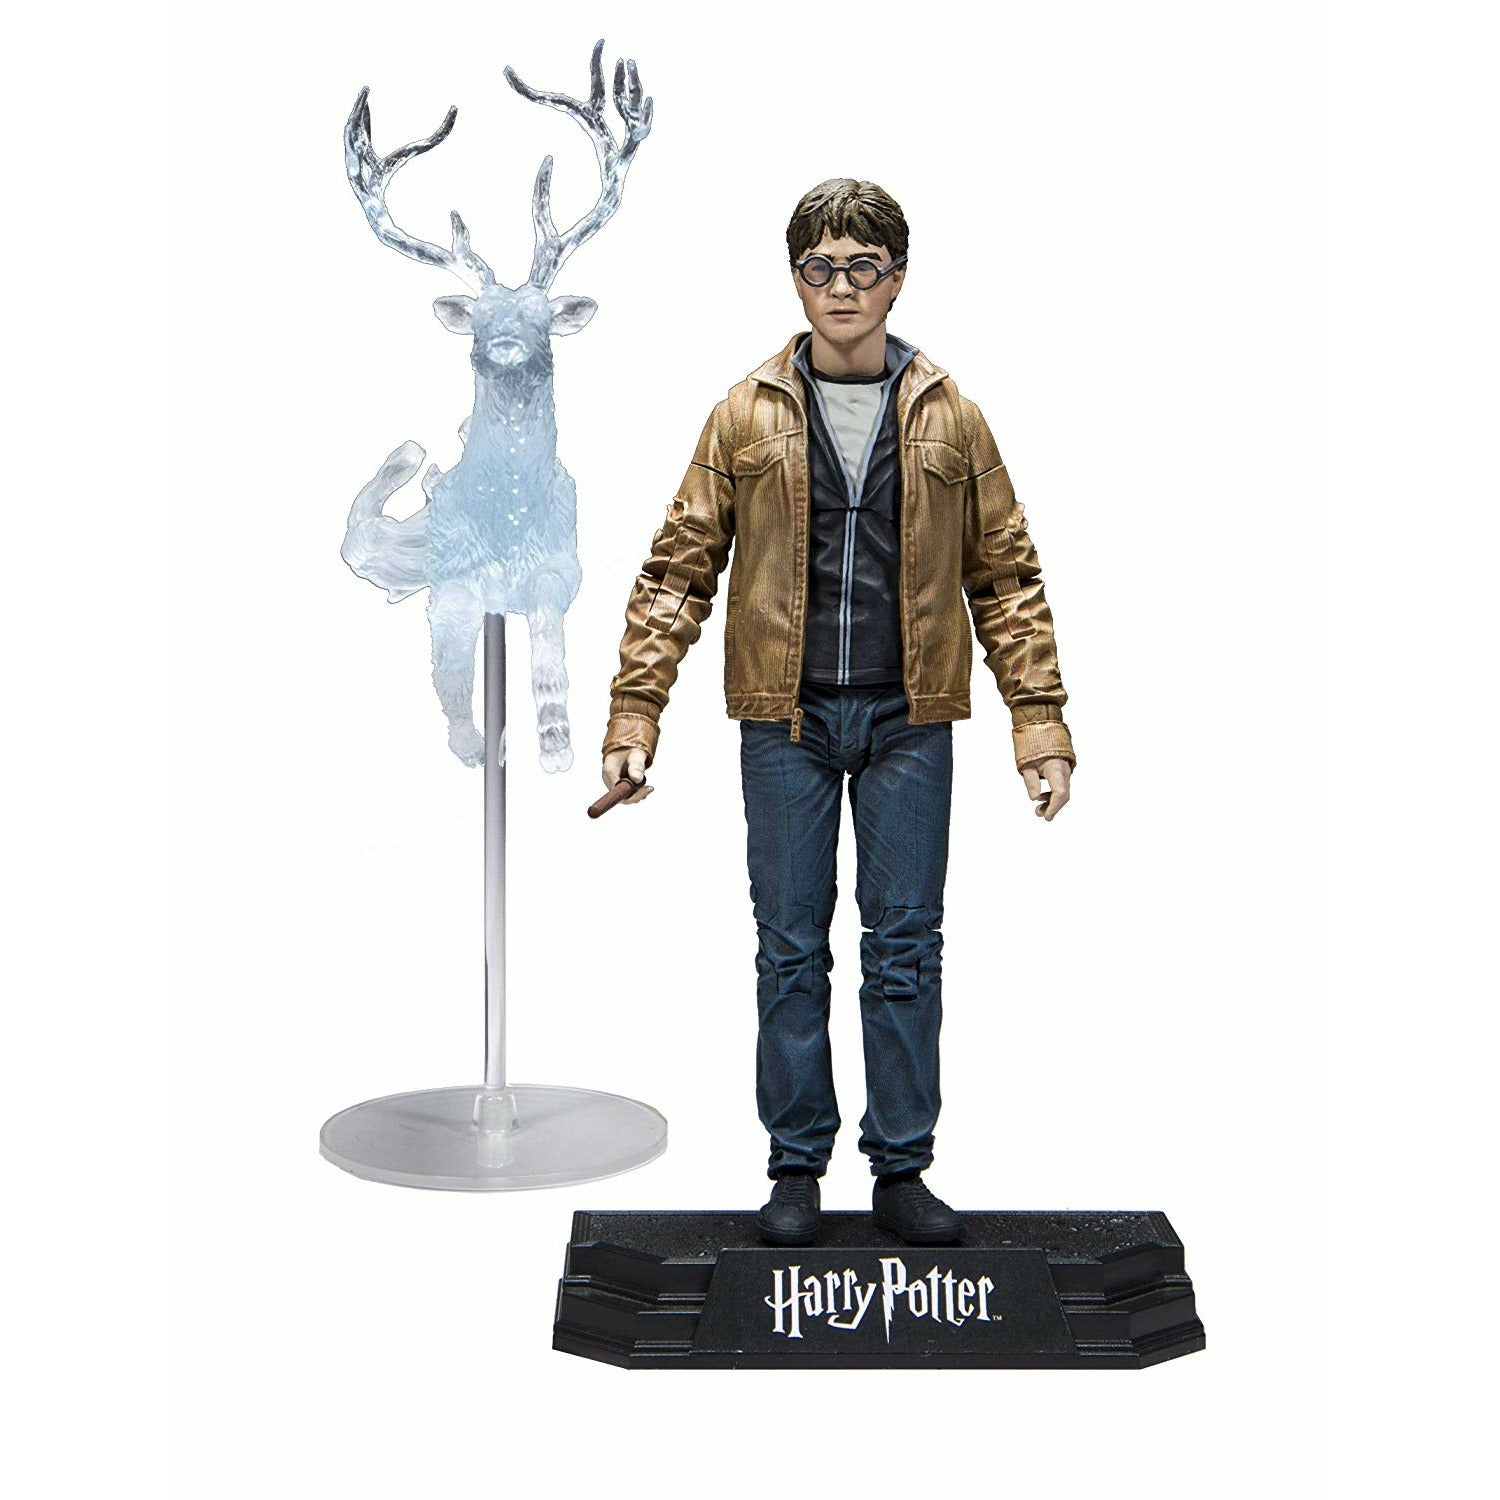 Harry Potter and the Deathly Hallows Part 2 Harry Potter 7 inch Action Figure